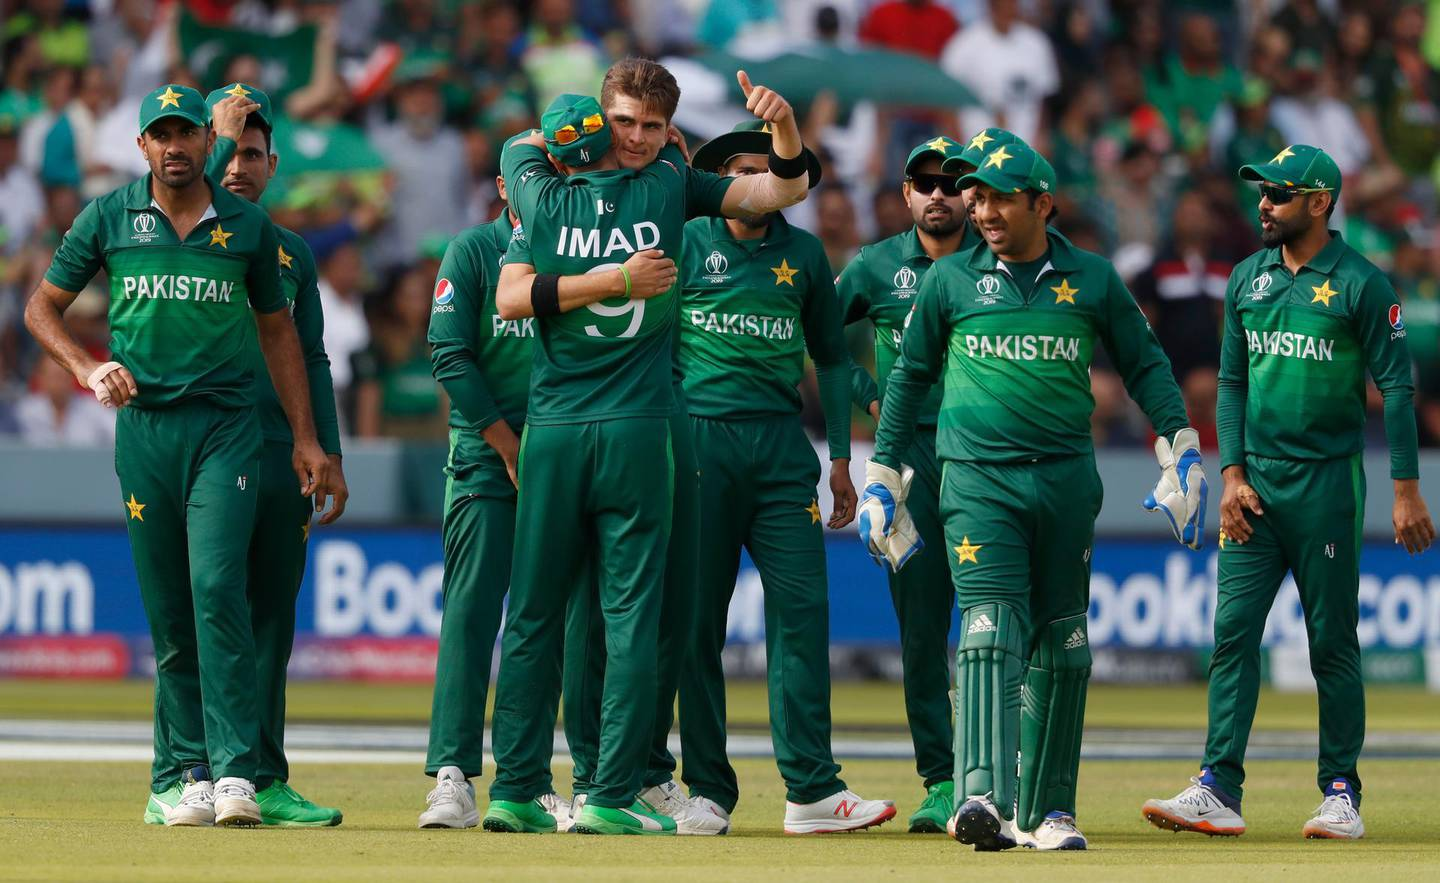 Pakistan's Shaheen Afridi, centre gives a thumbs up as he celebrates with teammates after taking the wicket of Bangladesh's Mahmudullah during the Cricket World Cup match between Pakistan and Bangladesh at Lord's cricket ground in London, Friday, July 5, 2019. (AP Photo/Alastair Grant)